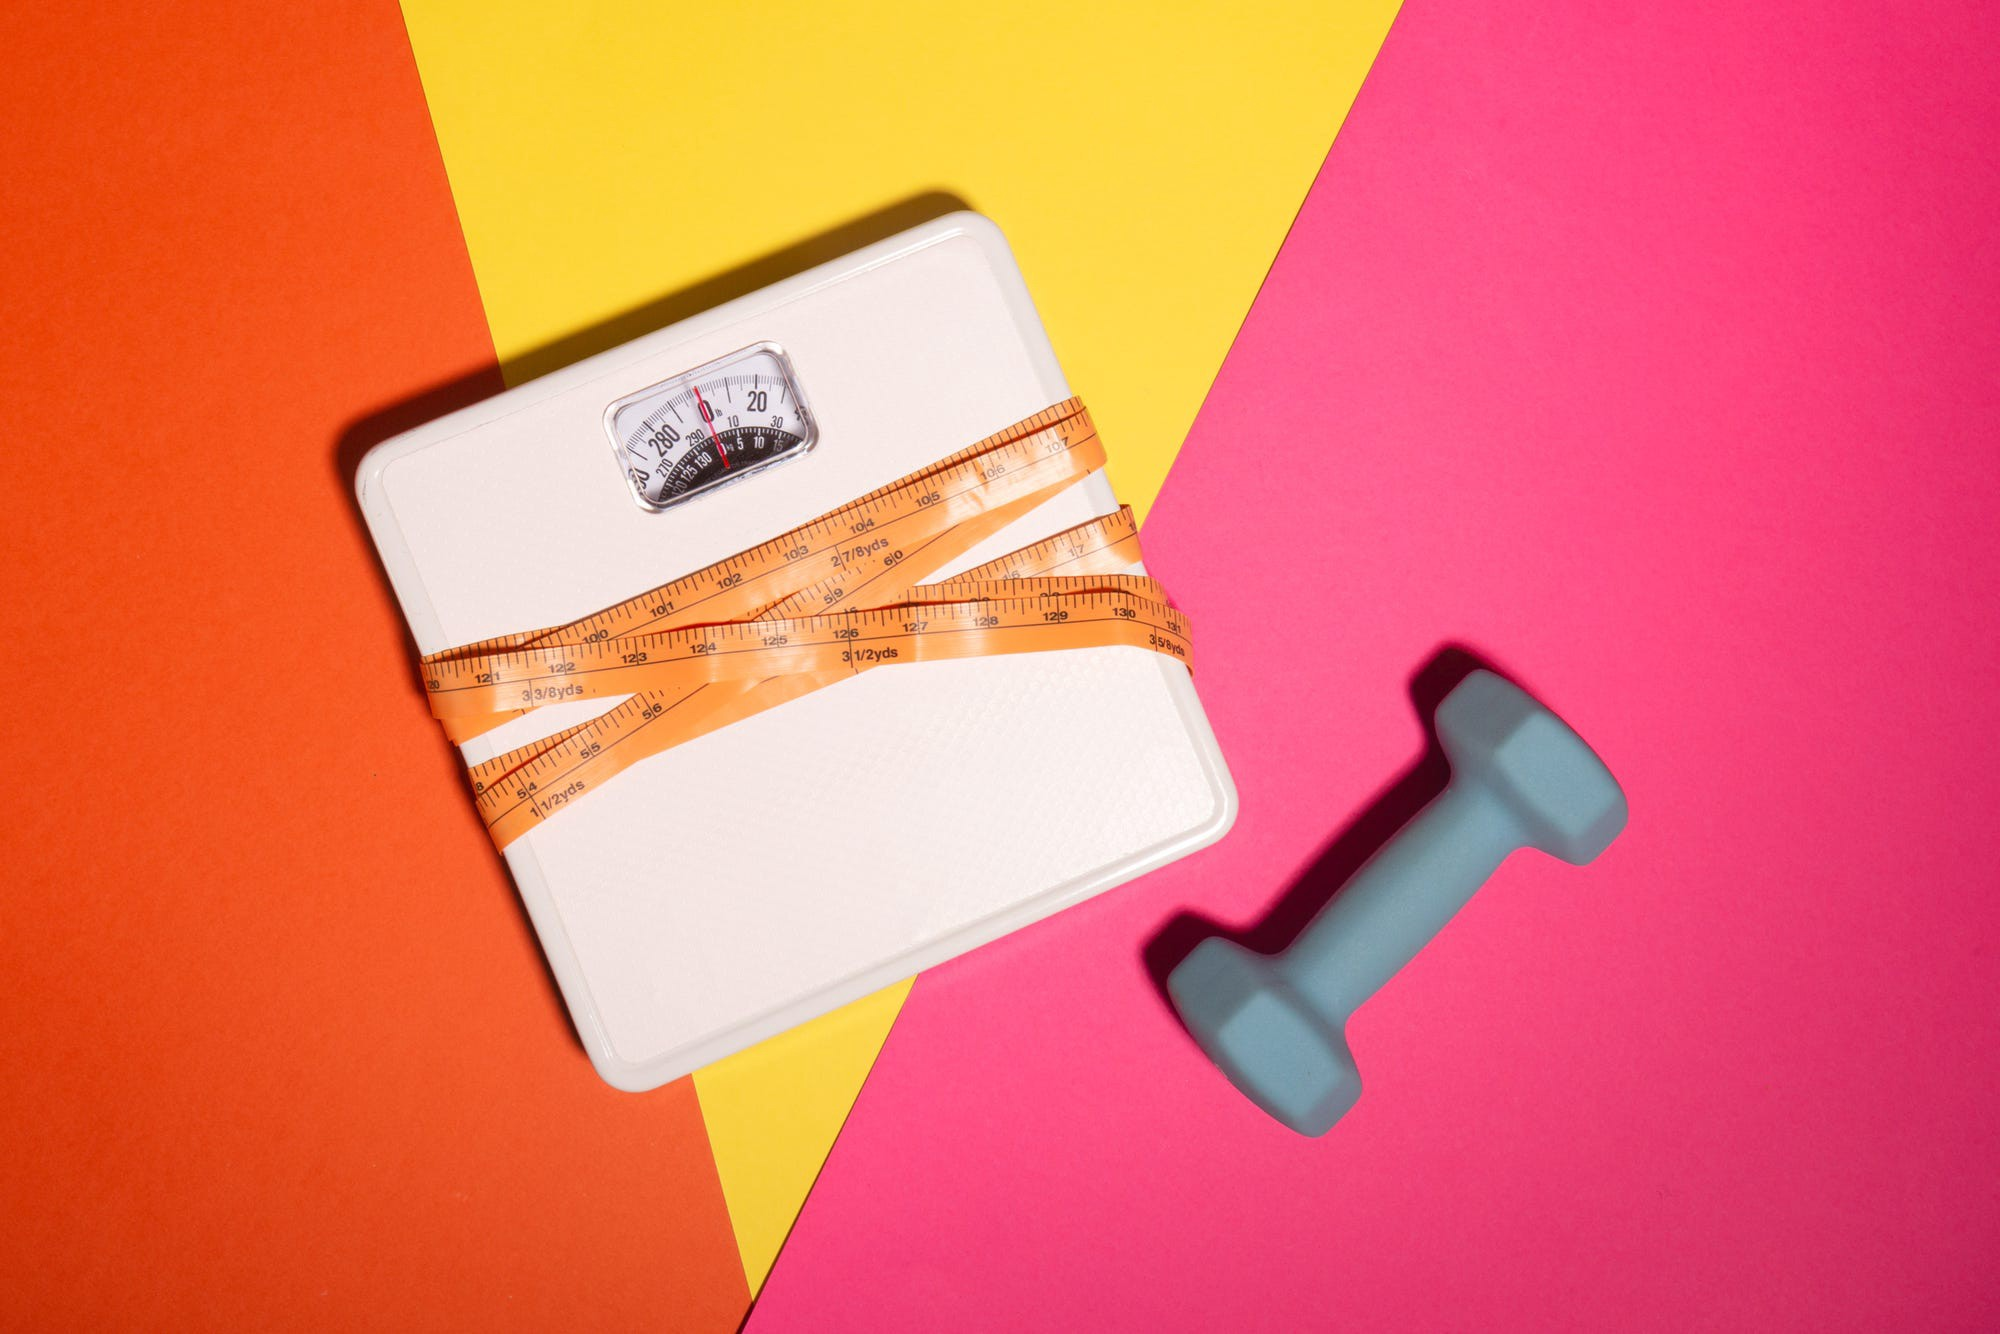 A scale and a dumbbell.